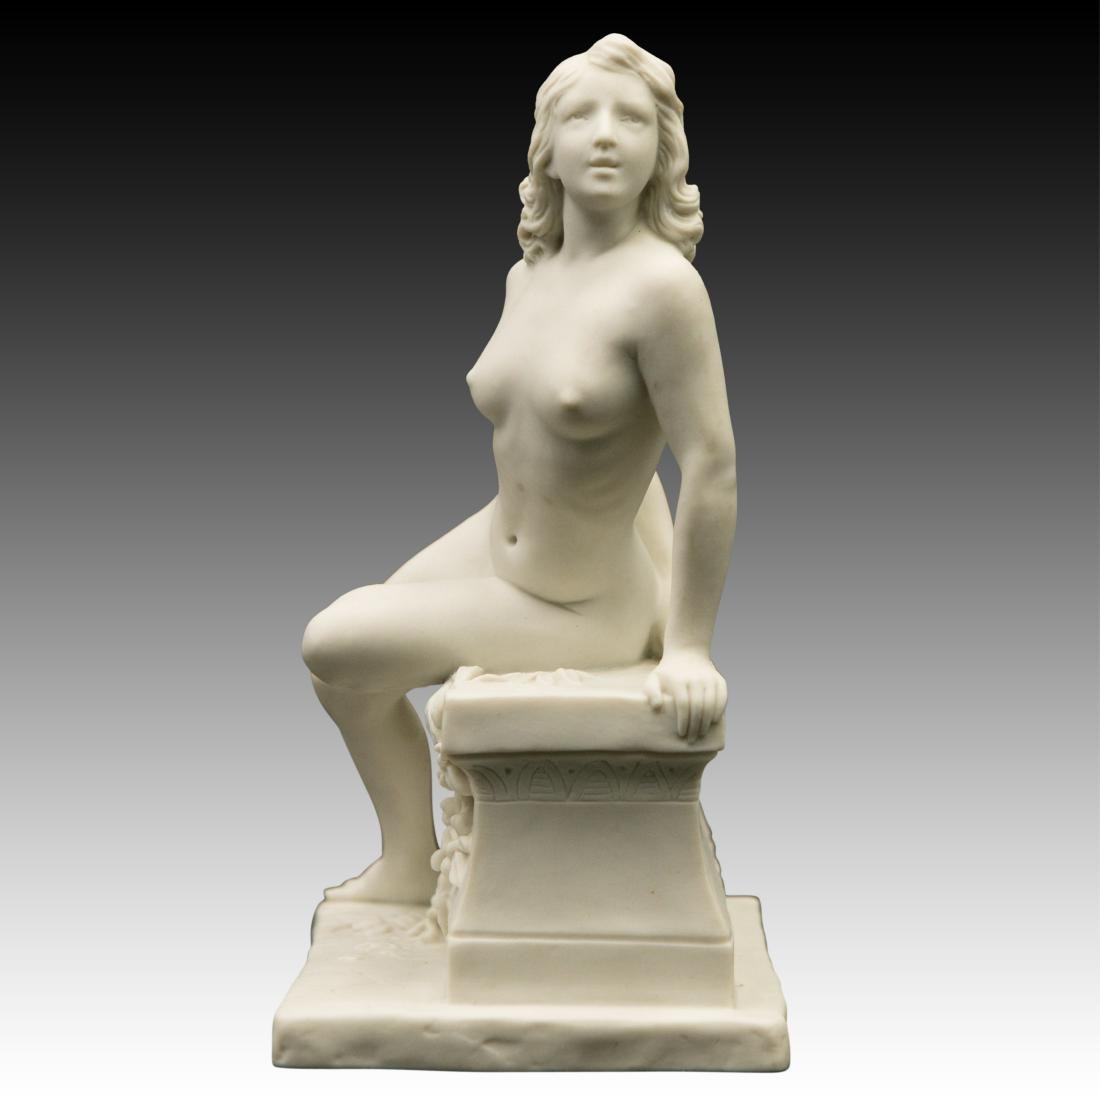 Young Nude woman Sitting on Marble Bench Figurine - 2